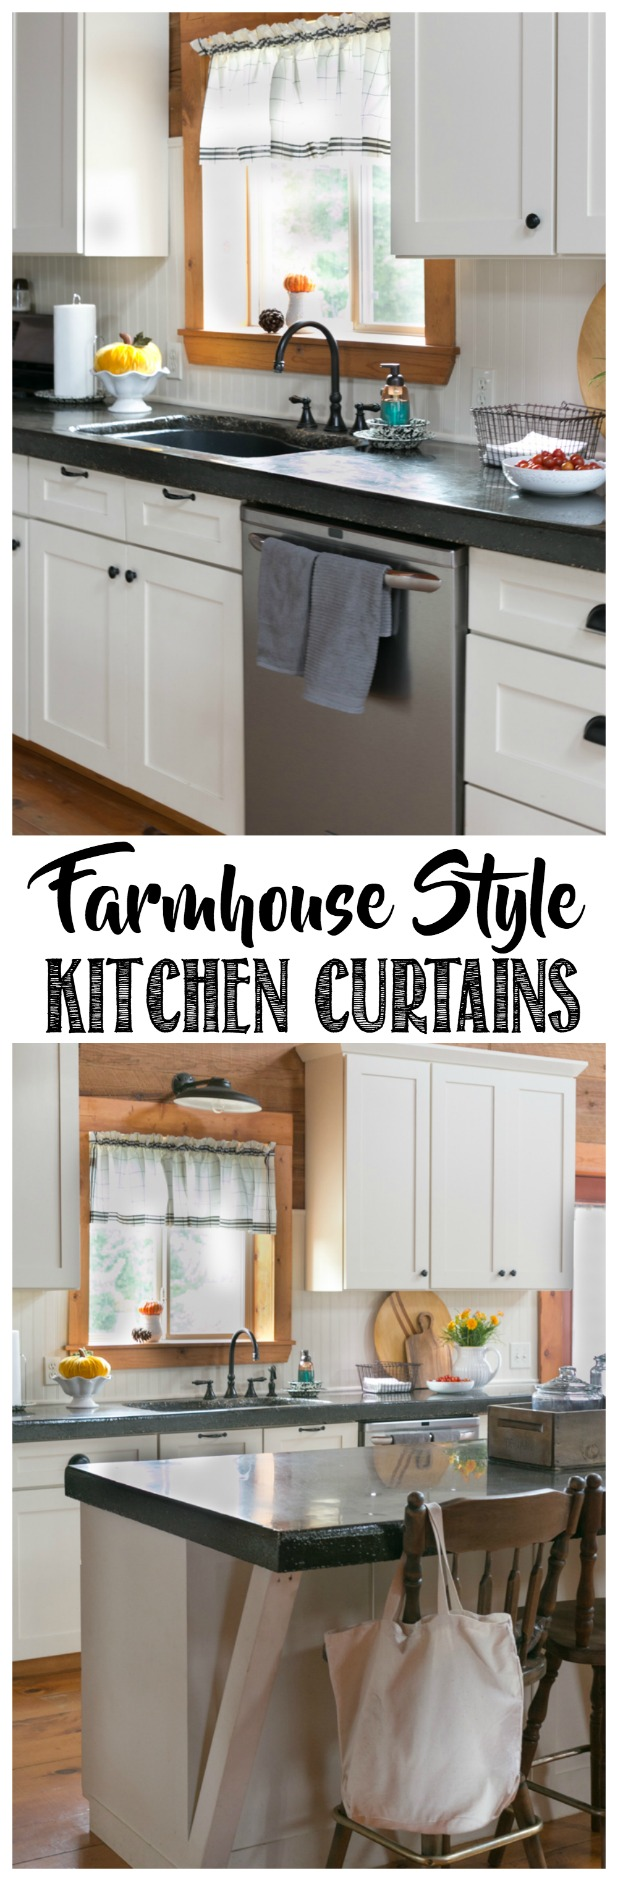 Lovely Farmhouse Style Kitchen Curtains